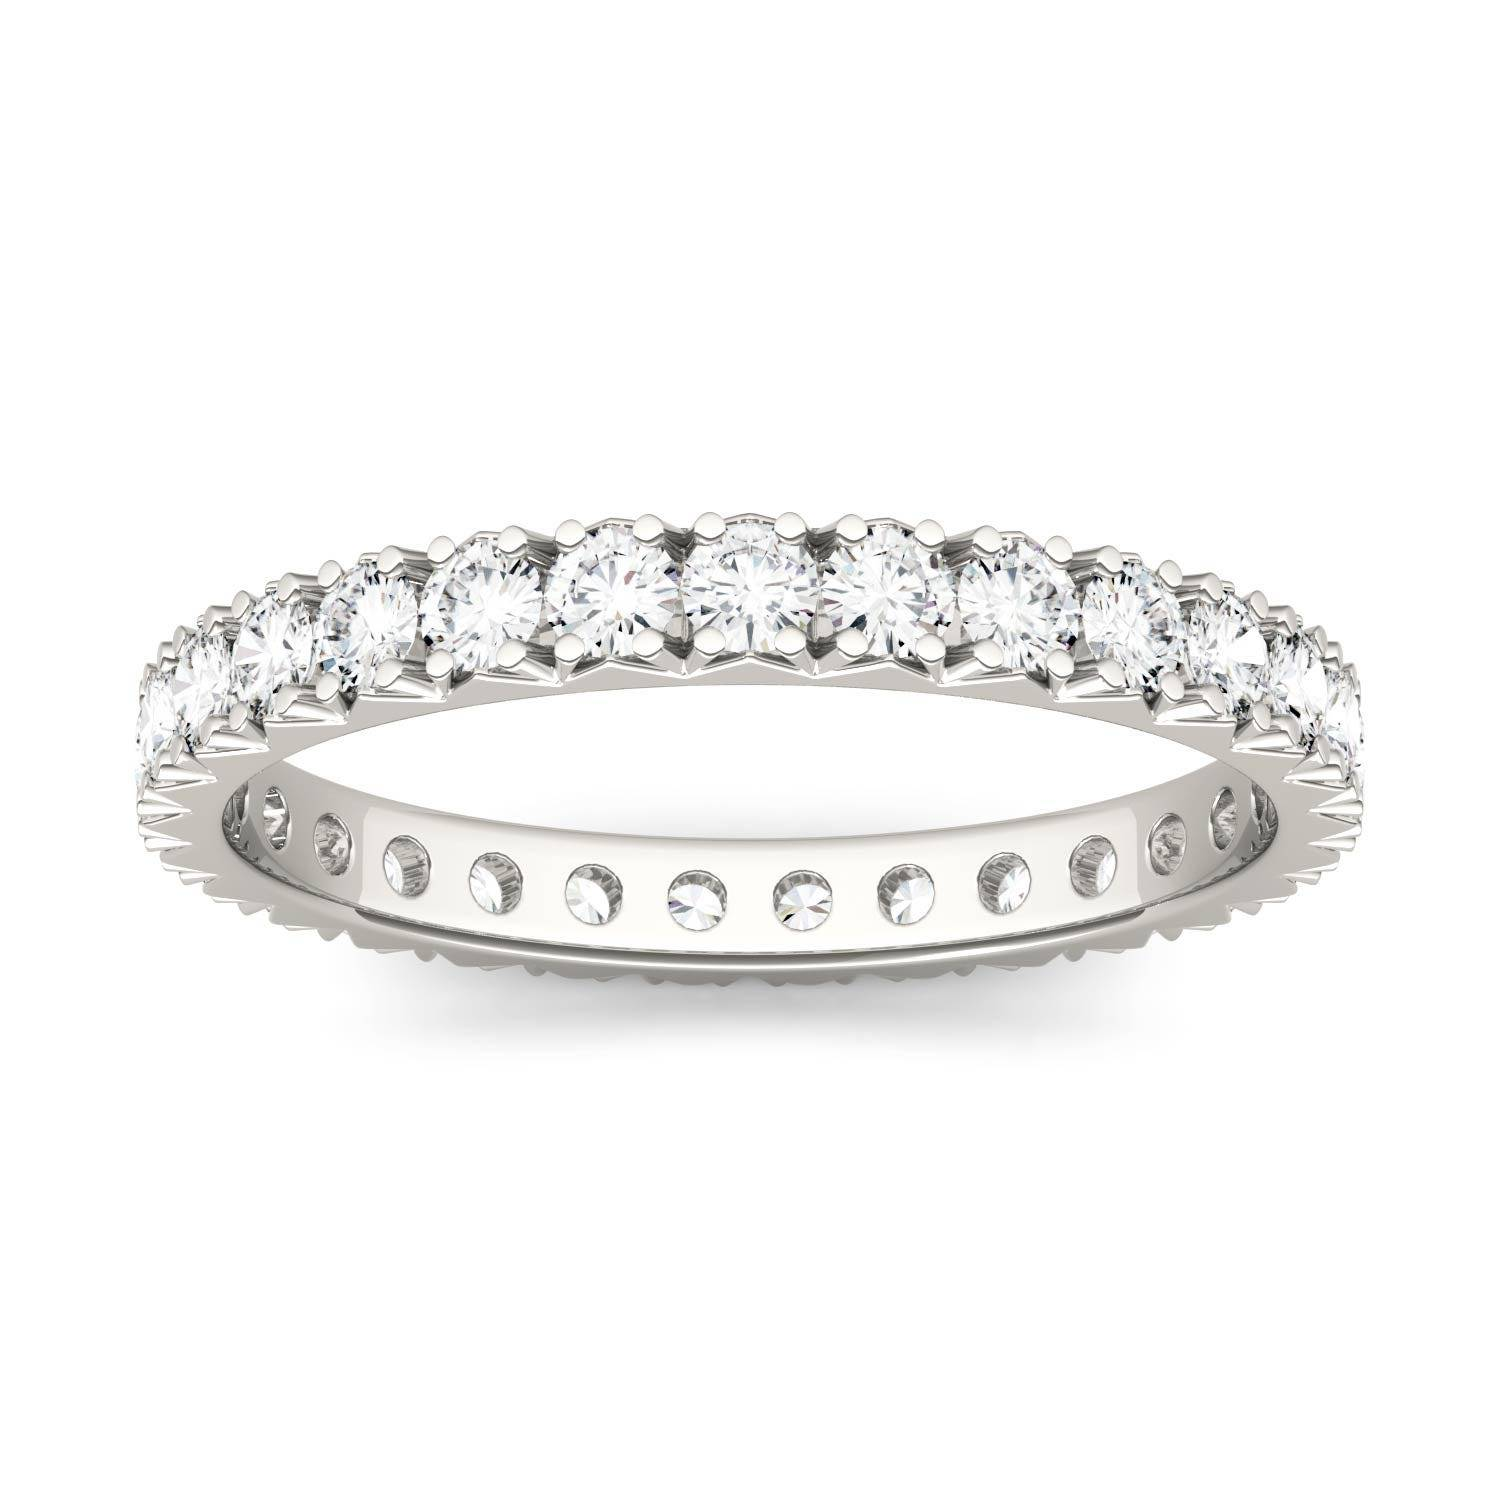 Charles & Colvard Eternity Prong Set Band Wedding Ring in 14K White Gold, Size: 8, 1.00CTW Round Forever One Moissanite Accent Stones Charles & Colvard  - White Gold - Size: 8